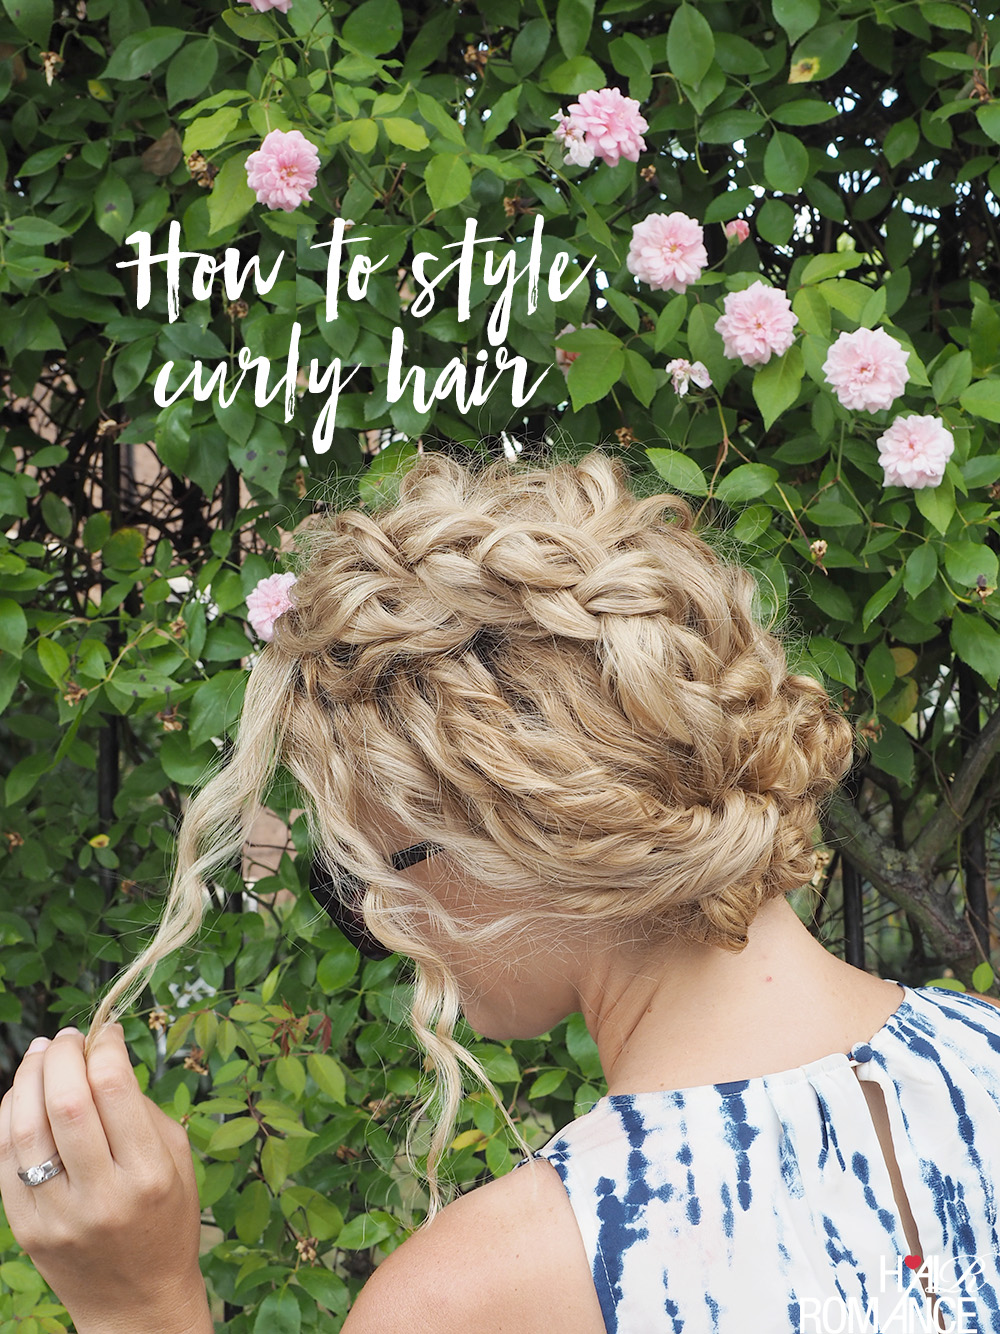 How To Style The Front Of Curly Hair Curly Hair Tutorials By Hair Romance